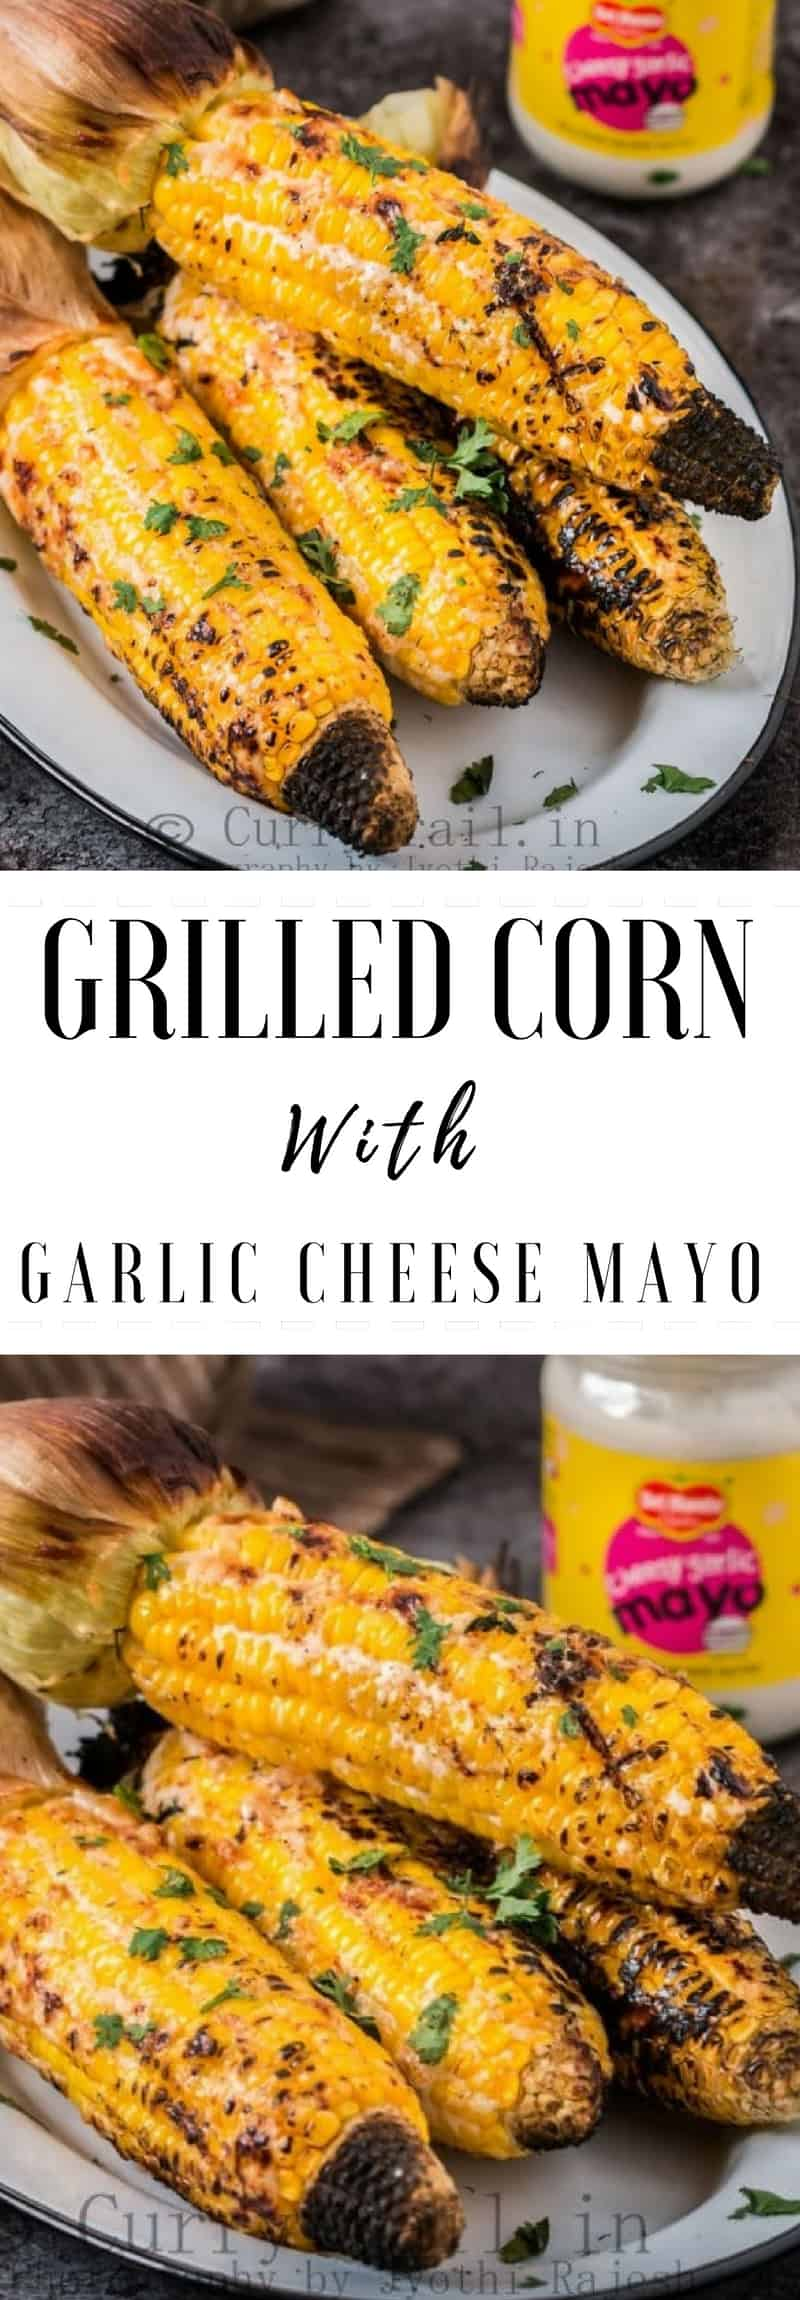 The best way to eat corn is corn on cob and what's better than a grilled corn!  The perfect grilled corn on cob would need just a handful of ingredients, those which are the most important ones to make the perfect grilled corn on cob.